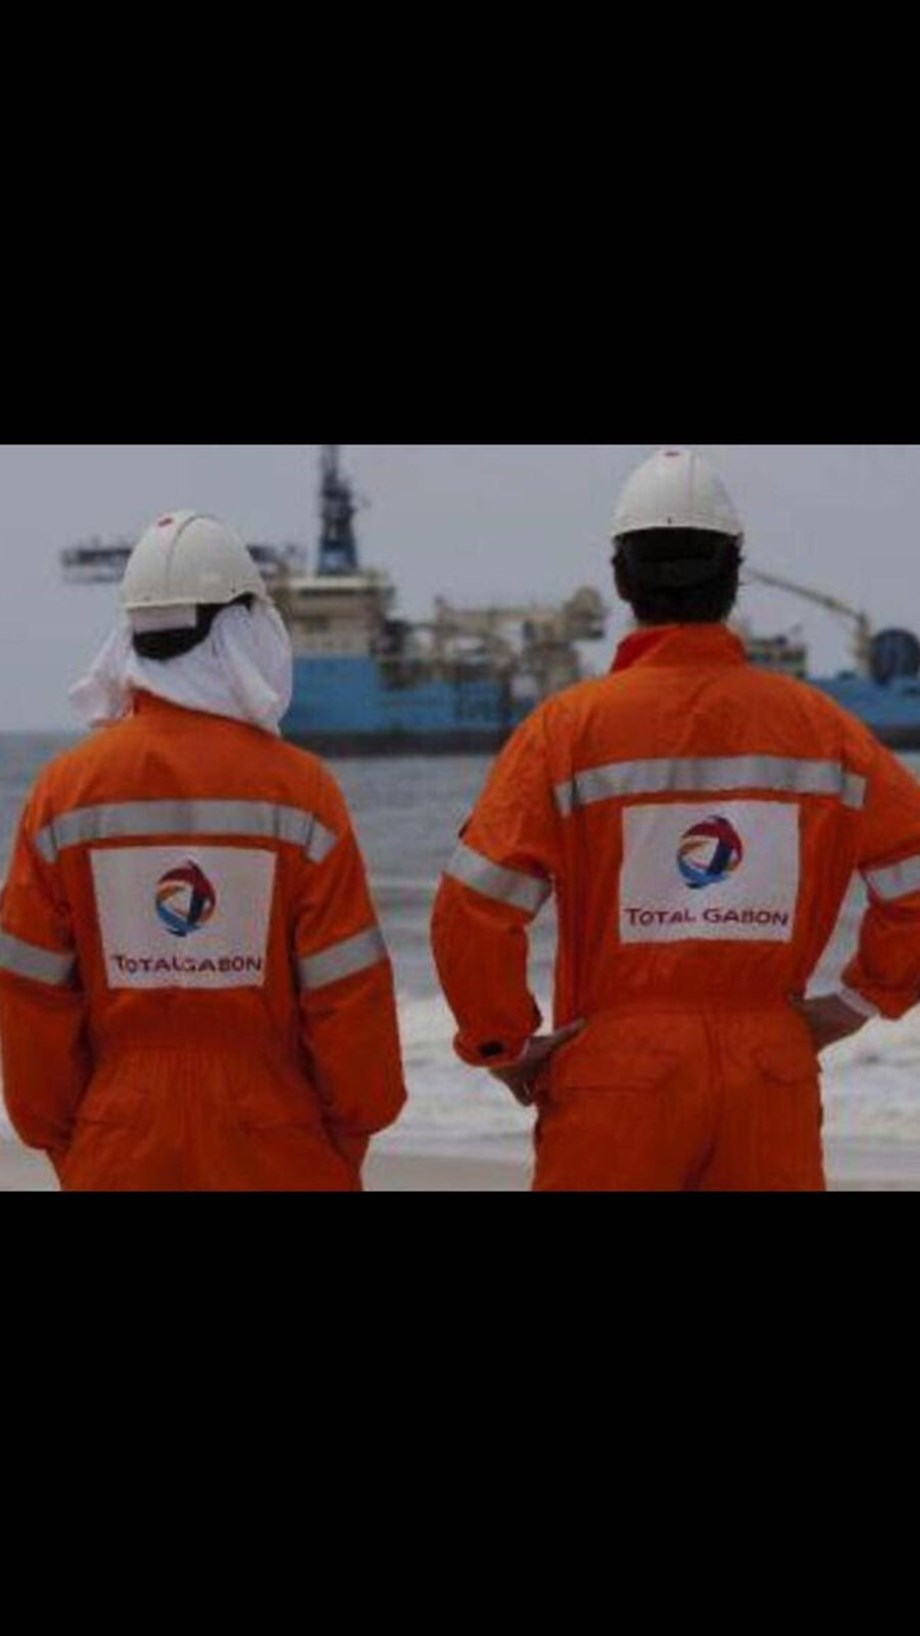 Gabon oil workers' union ends strike at Total facilities